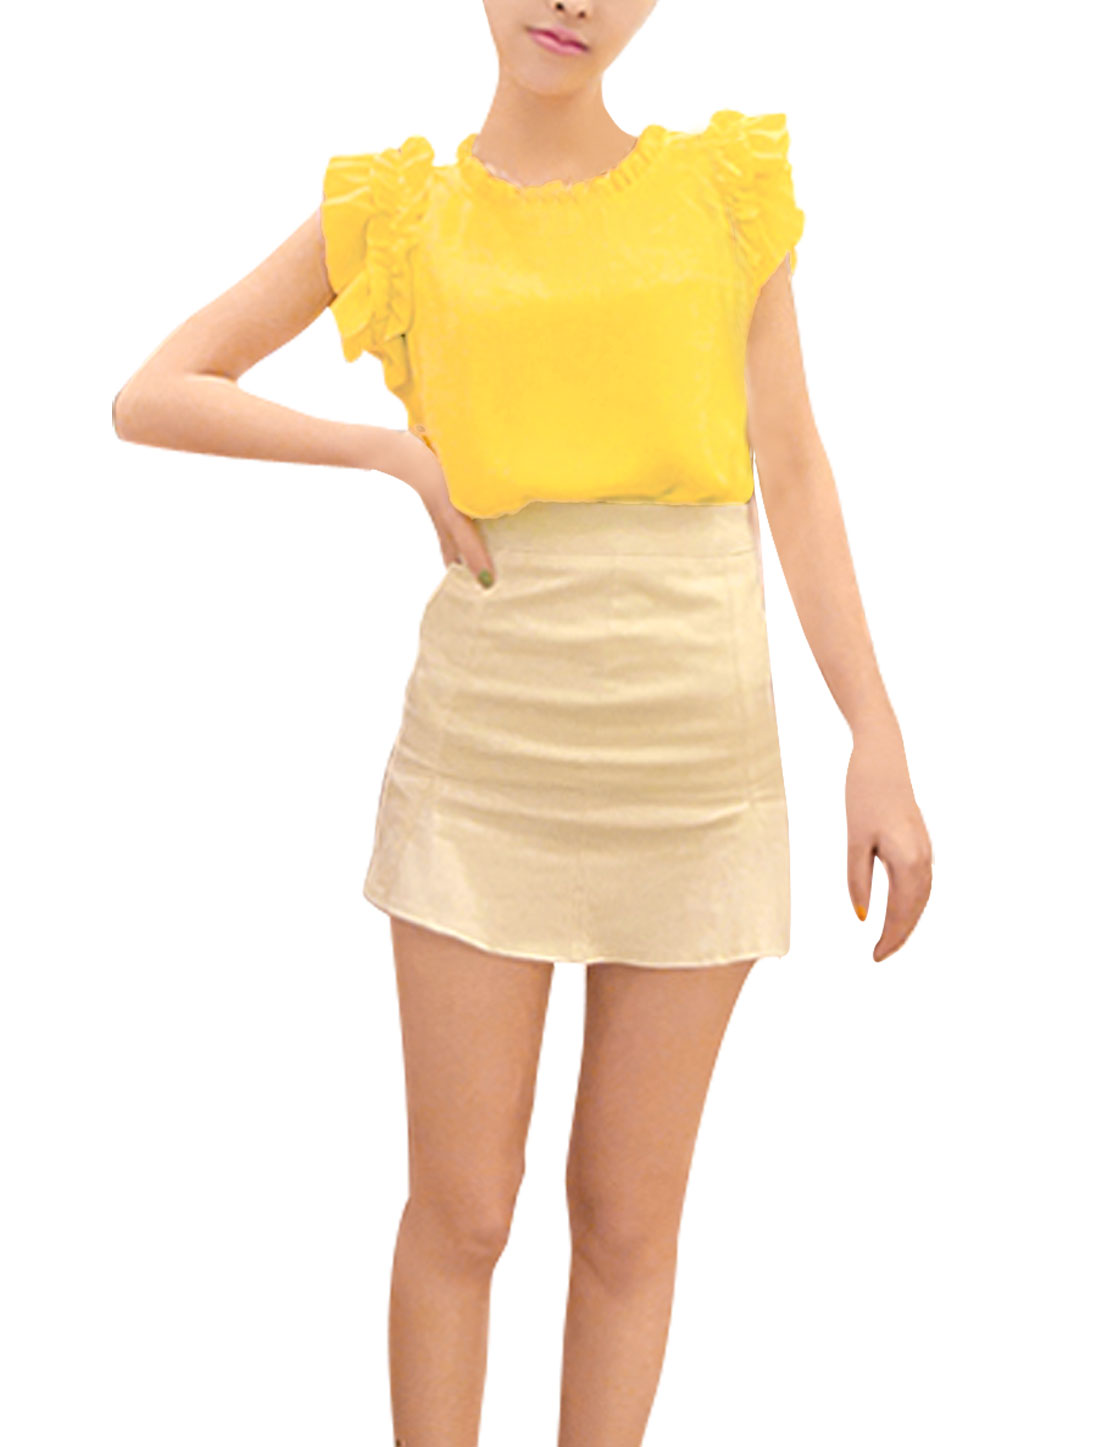 Lady Hidden Zipper Back Sleeveless Solid Color Tops Blouses Yellow S